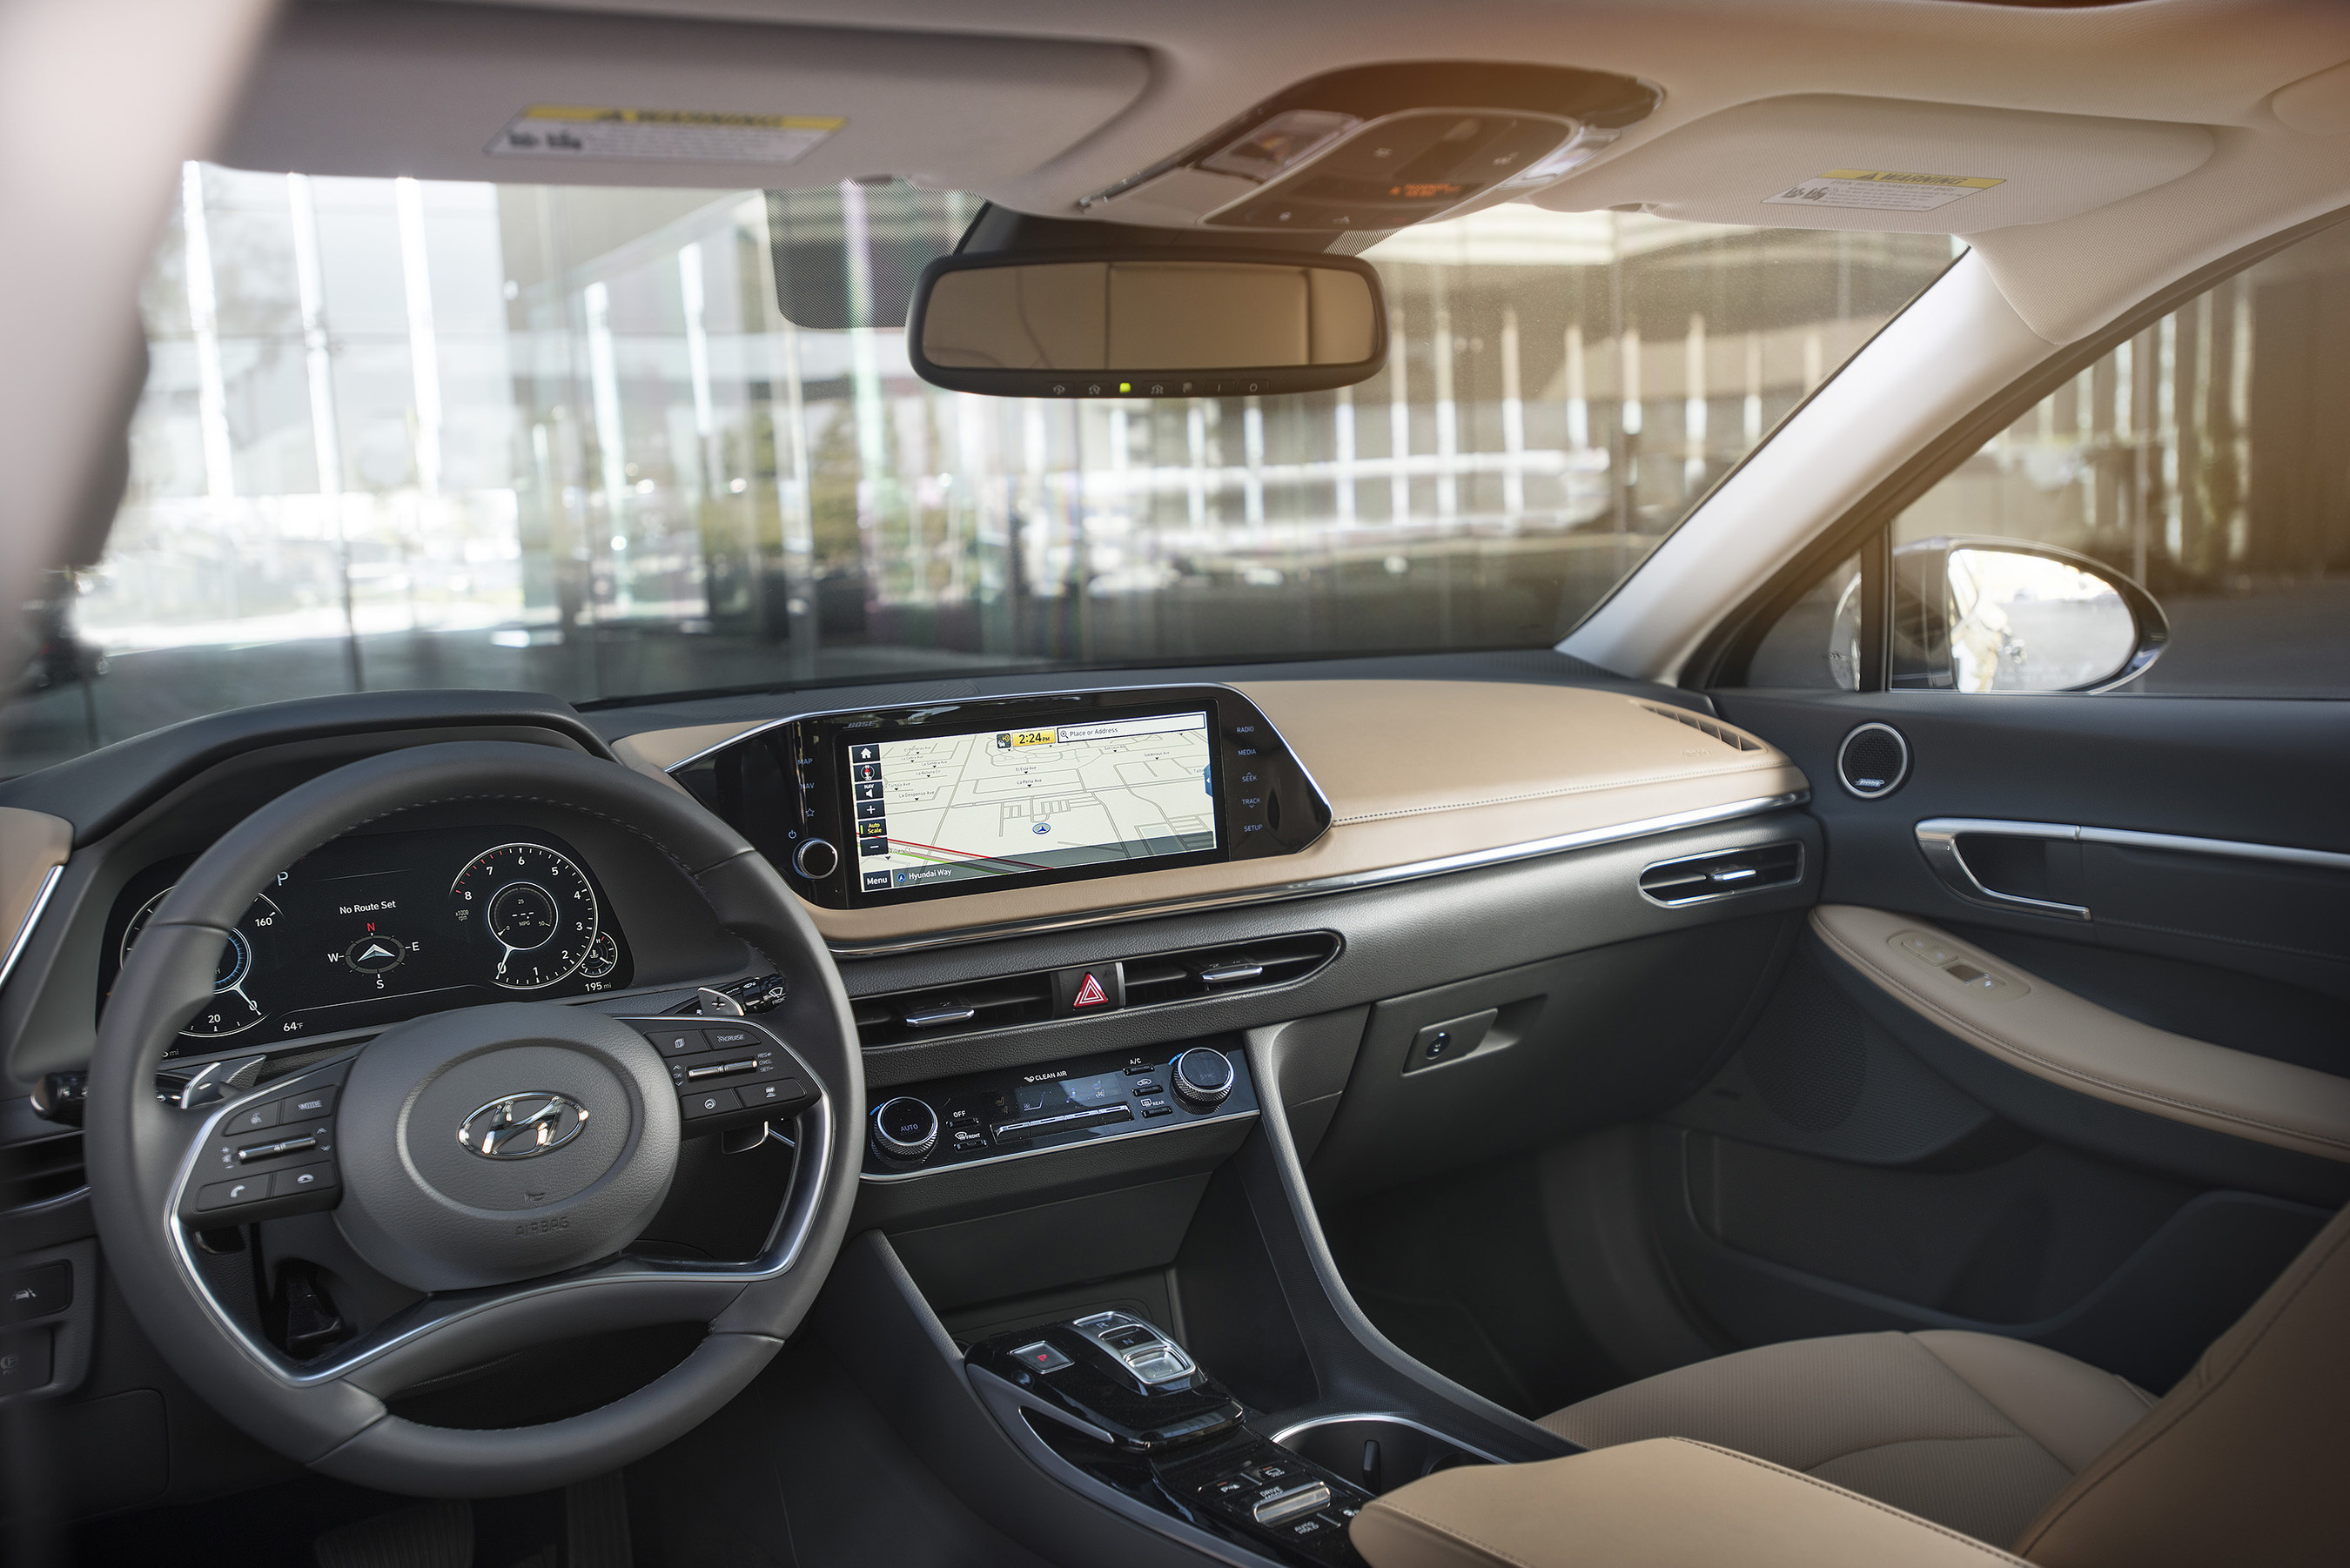 New 2020 Sonata With Striking Design And Loads Of Standard Safety Technology Starting At 23 400